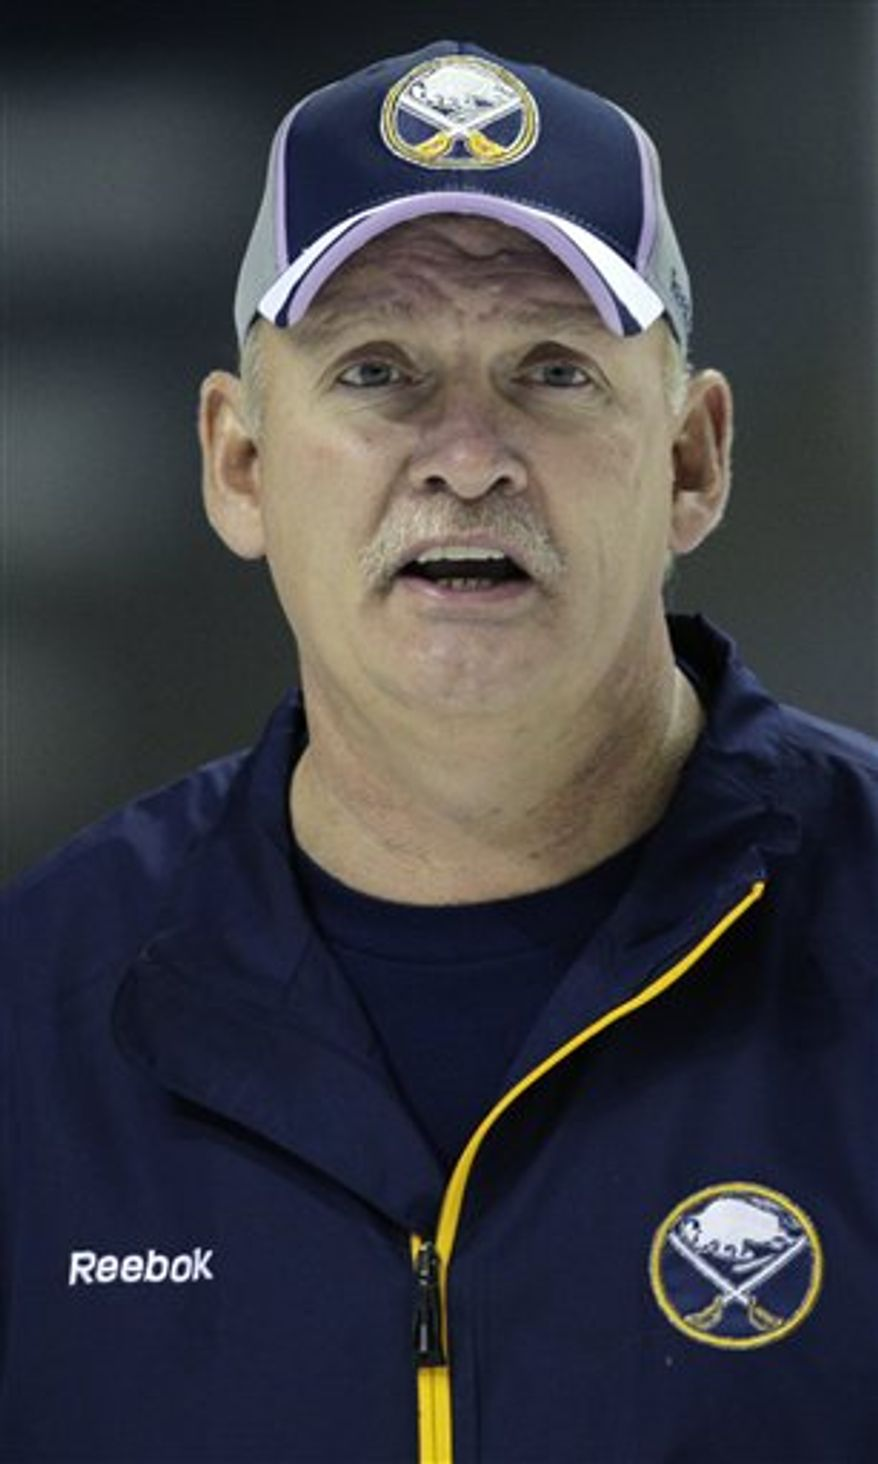 FILE - This Oct. 6, 2010, file photo shows Buffalo Sabres coach Lindy Ruff during NHL hockey practice in Buffalo, N.Y. Ruff is set become only the third NHL coach to reach 1,000 games with one team. The milestone comes Wednesday, Nov. 10, 2010, when Buffalo plays at New Jersey.  (AP Photo/David Duprey, File)